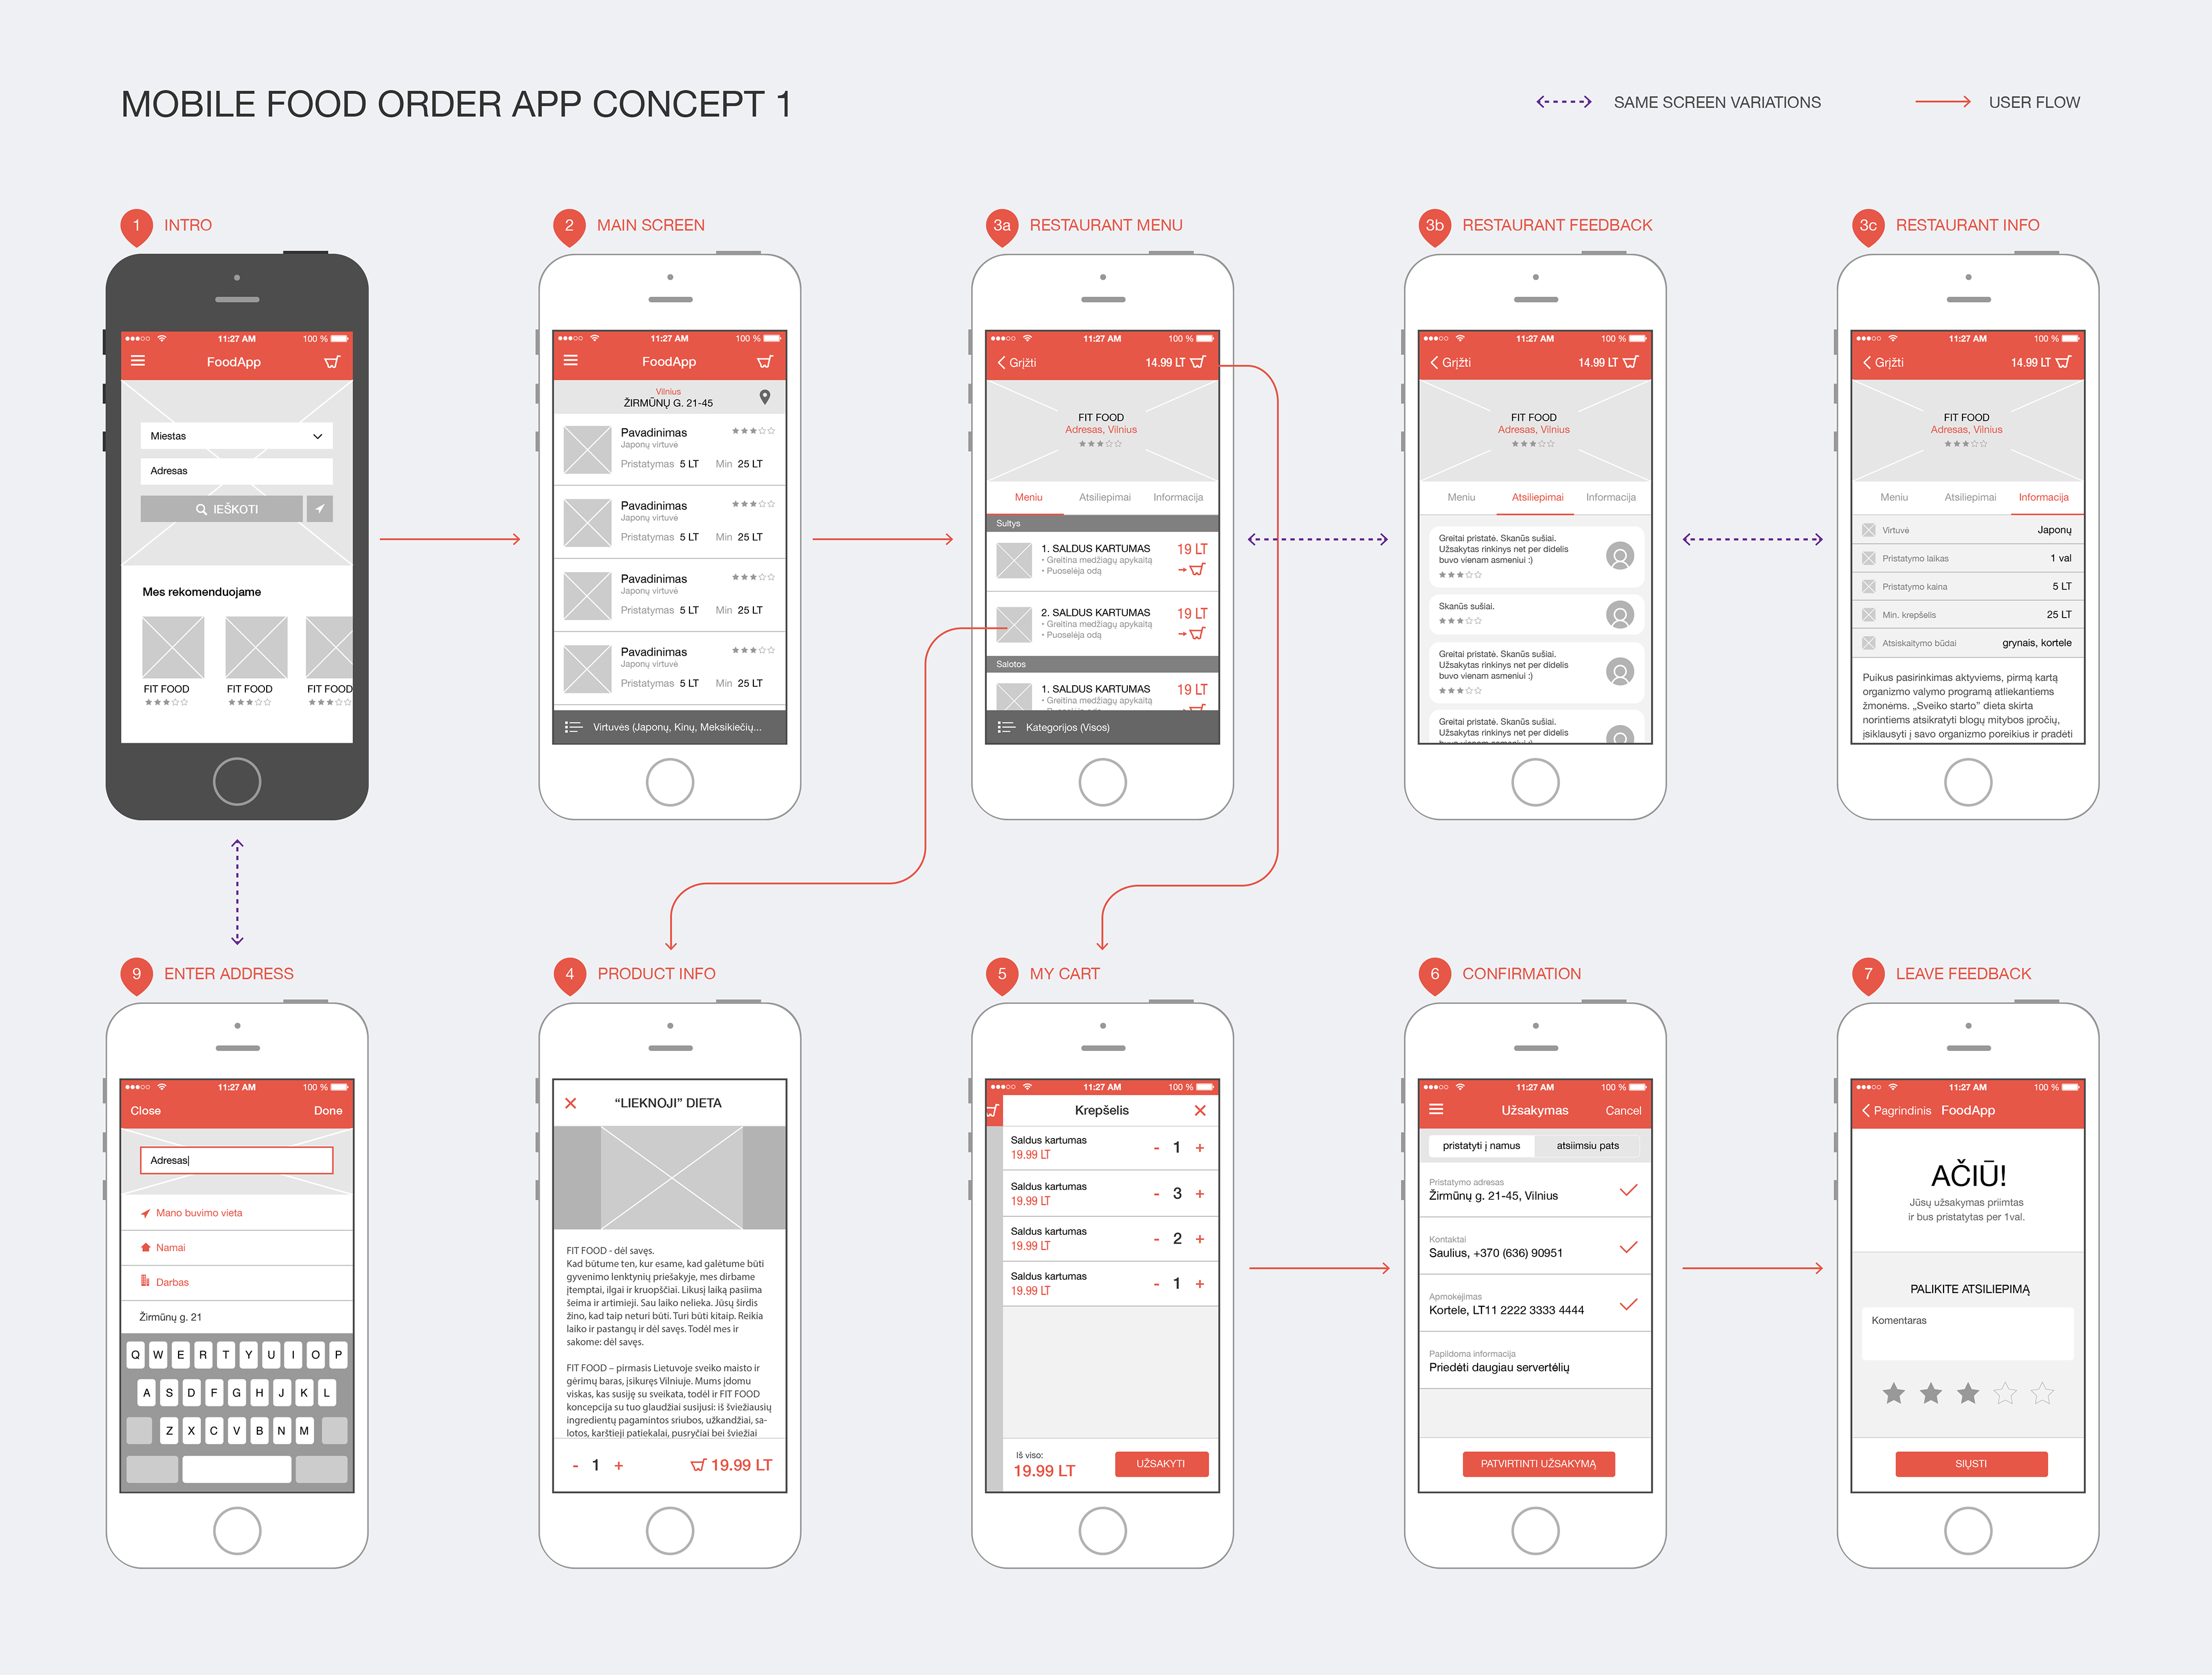 Mobile app development agency asked me to design a mobile